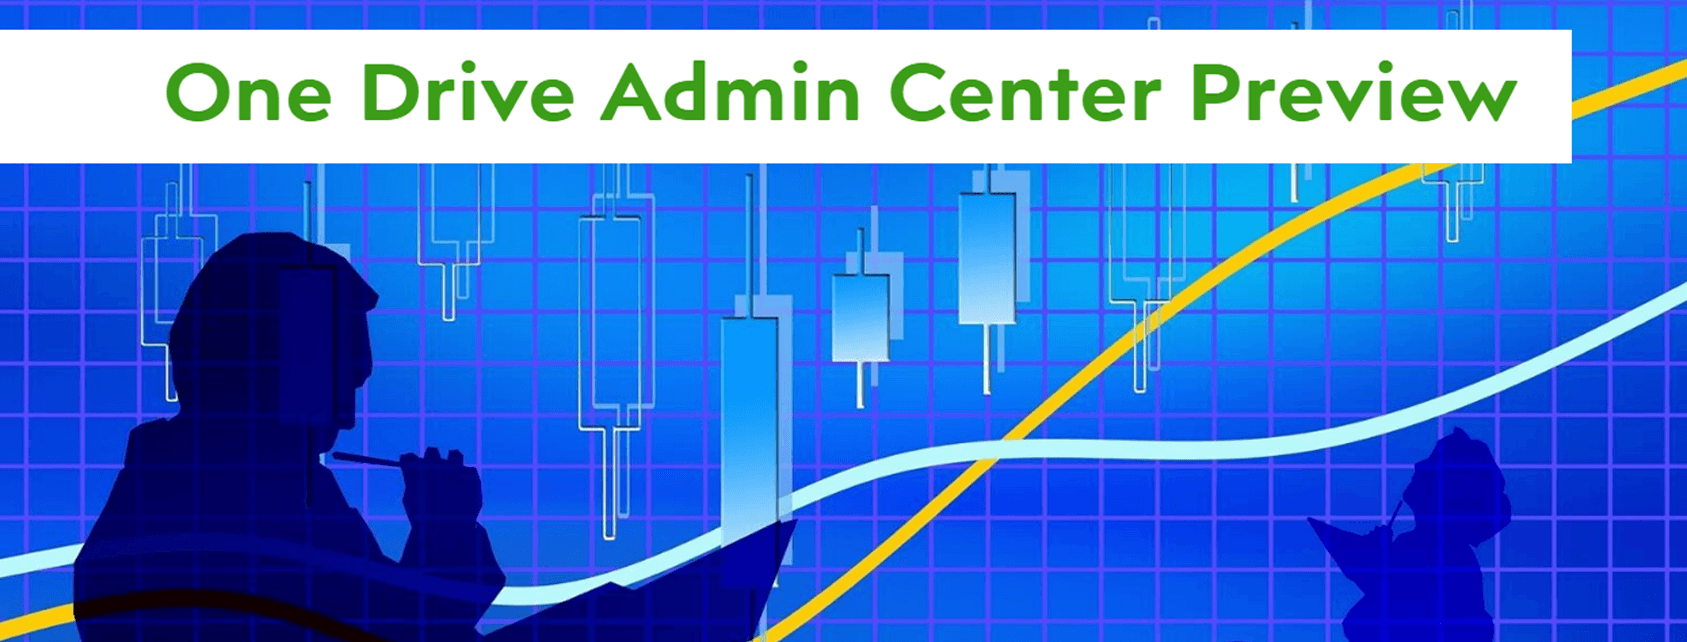 One Drive Admin Center Preview